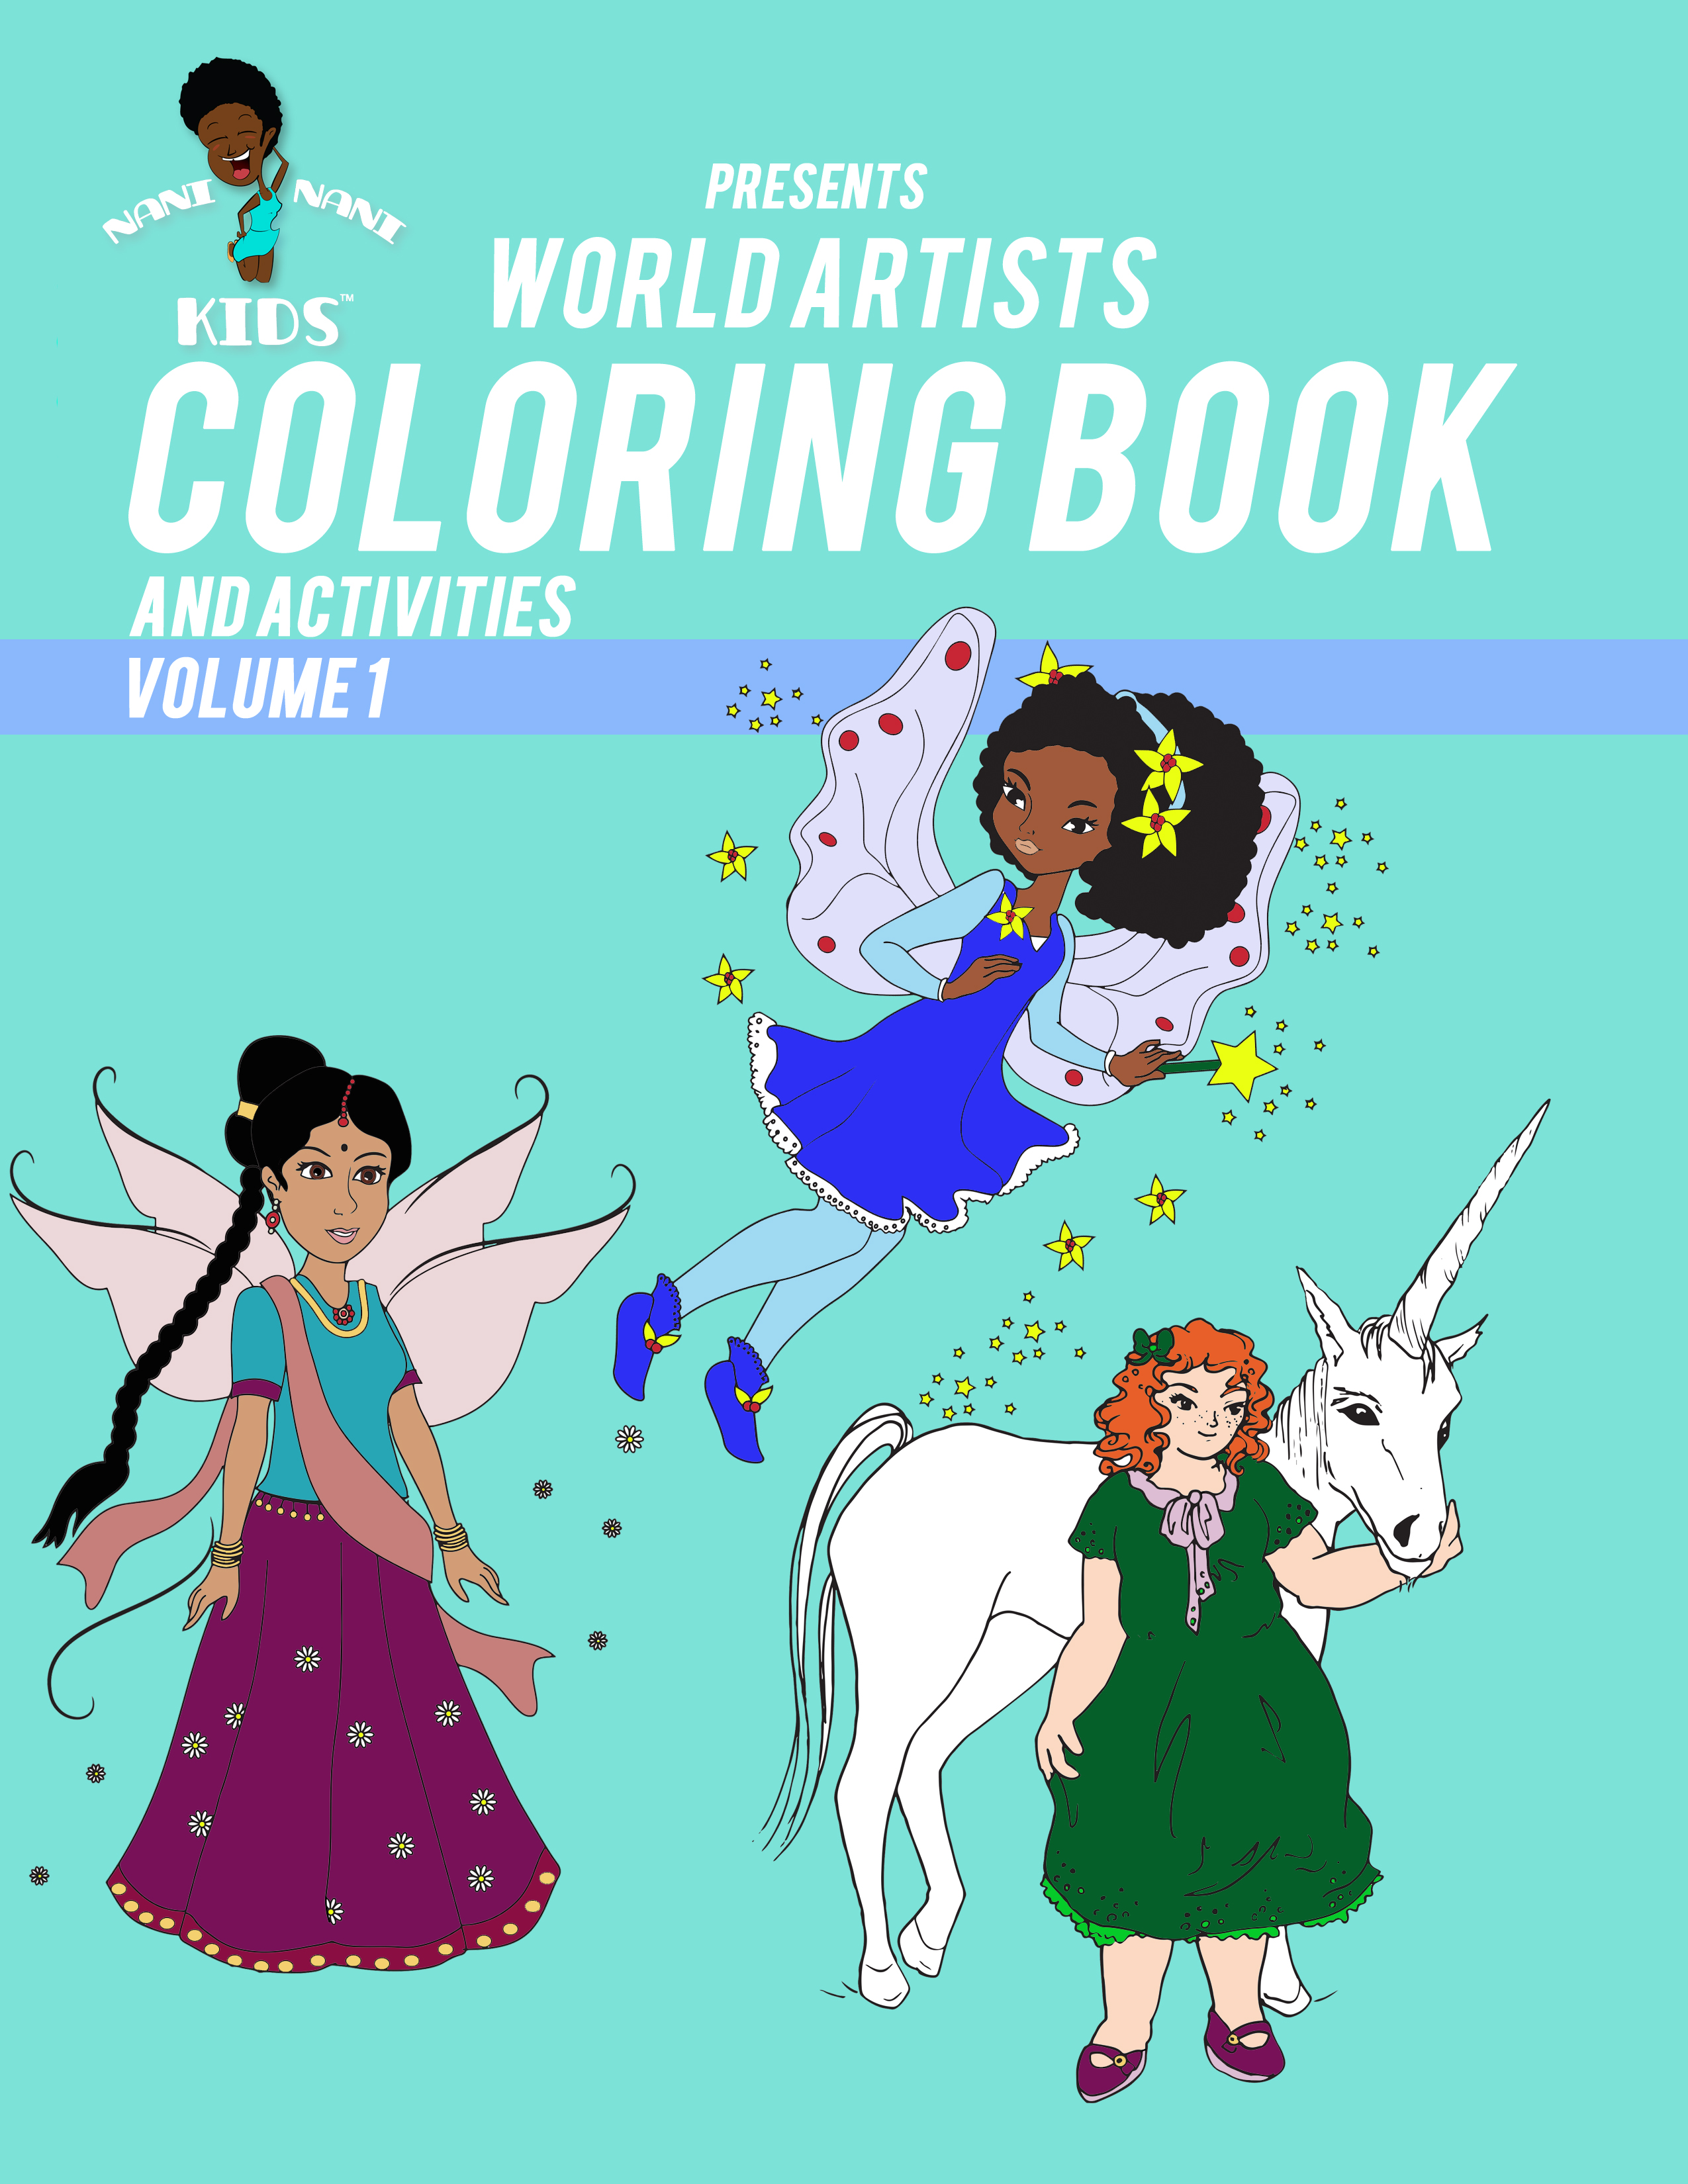 World Artist Coloring Book and Activities (Volume 1) – Nani Nani Kids